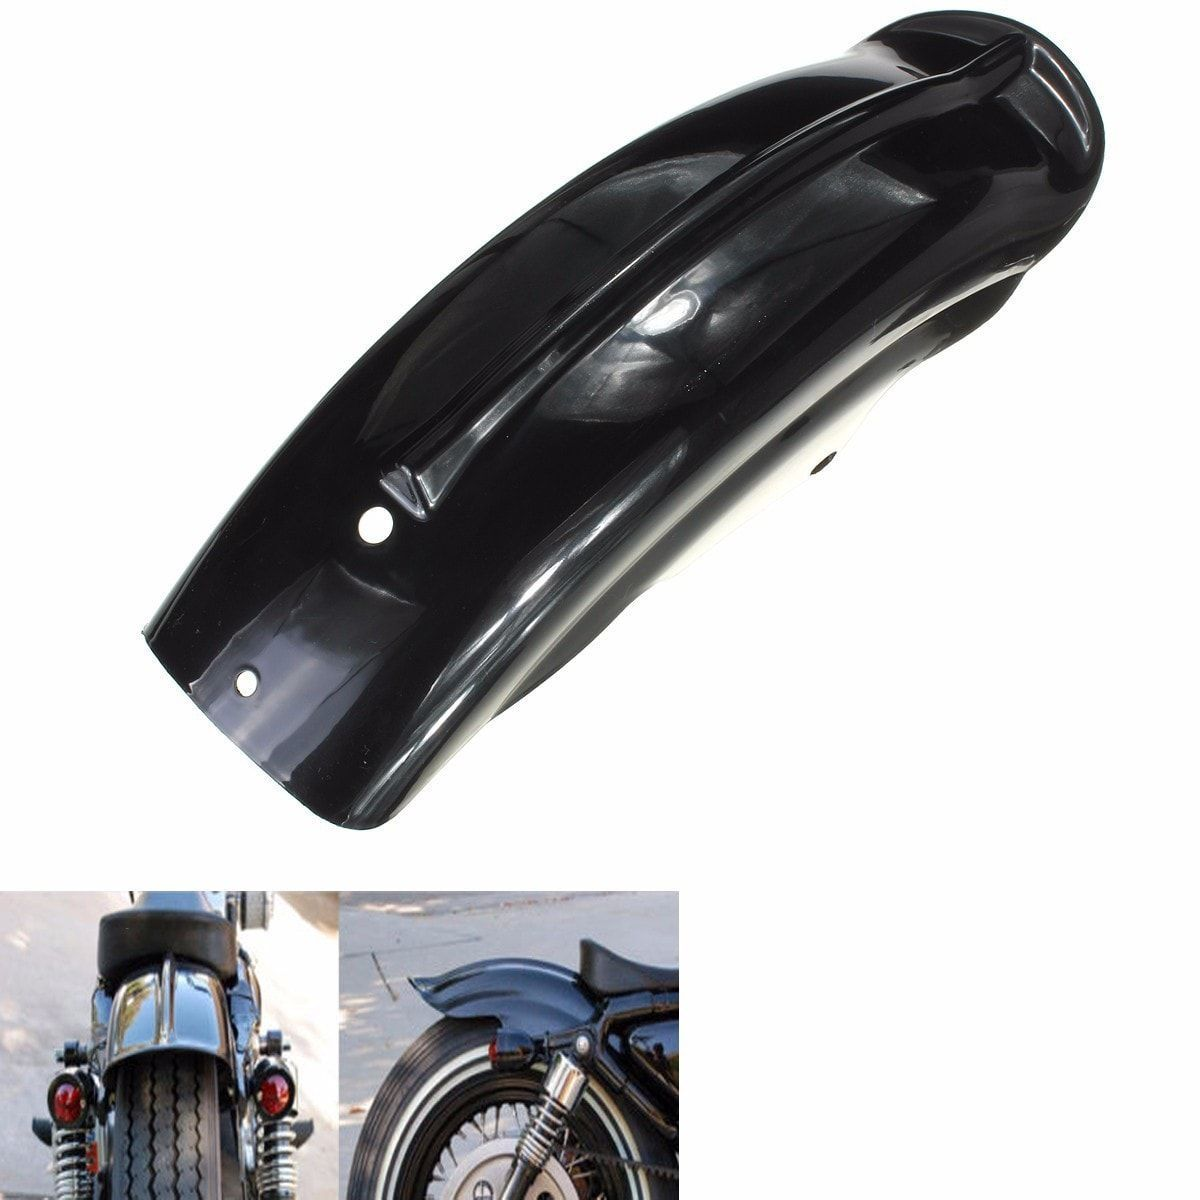 Motorcycle Black Rear Fender For Harley Sportster 1994-2003. Motorcycle Black Rear Fender For Harley Sportster 1994-2003     description:  as You Know, When You Are Driving In The Wet Road, It Is Easy To Make Your Motorcycle Dirty.  but Now The Item Can Keep Your Motorcycle Clean, What's More, It Can Add Beauty For Your Motorcycle.  it Is Time To Upgrade The Rear Fender For Your Motorcycle Now!    specification :  color : Black  material : Plastic  size : As The Picture Show  (please Check…